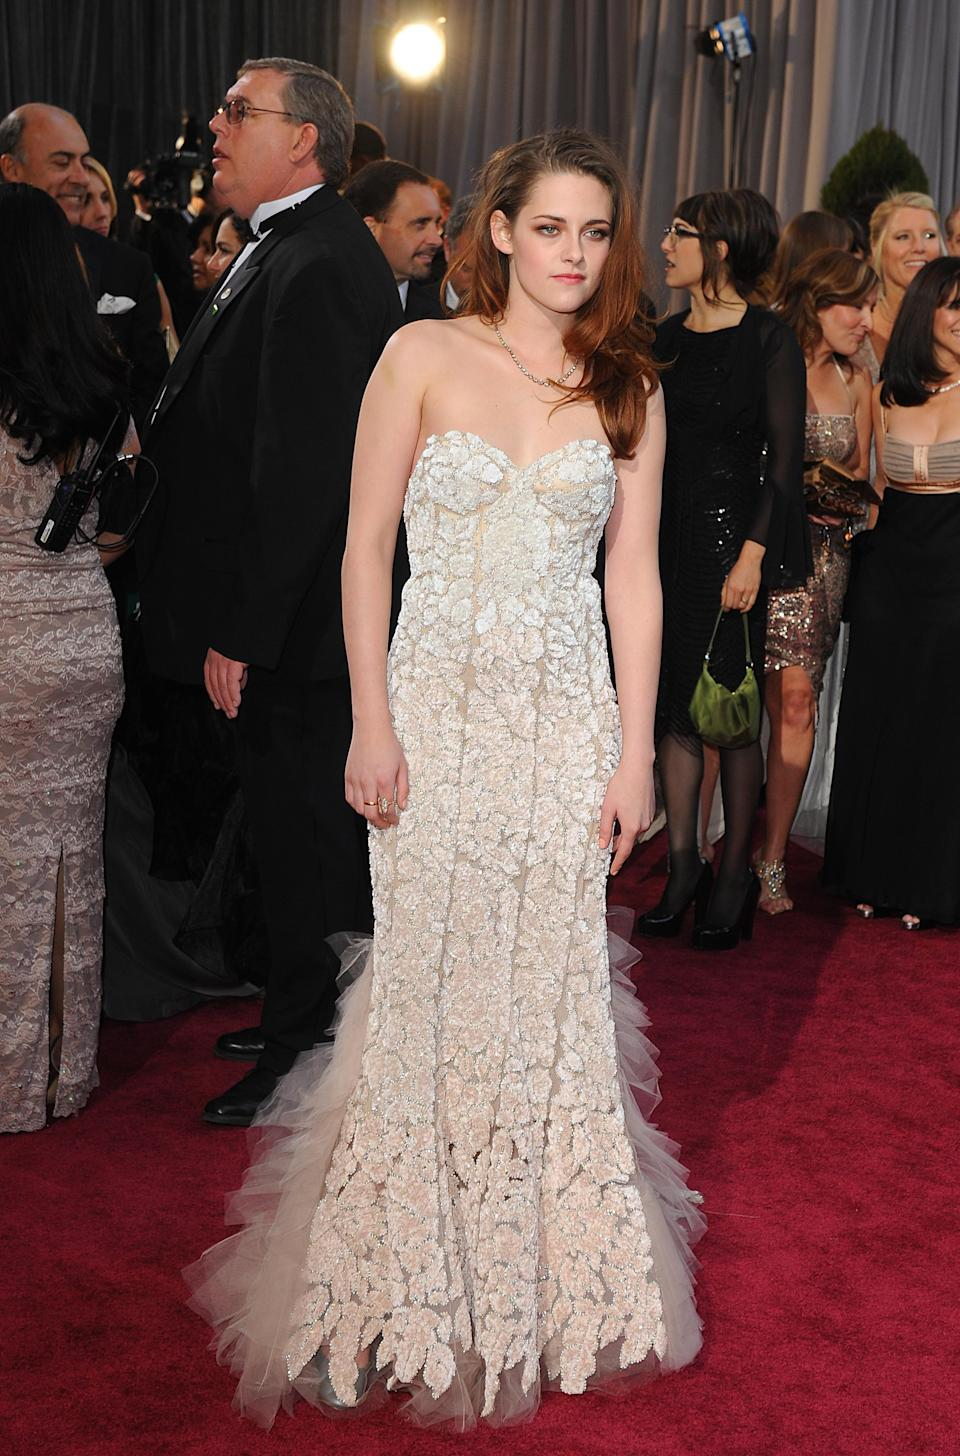 Kristen Stewart arriving for the 85th Academy Awards in 2013